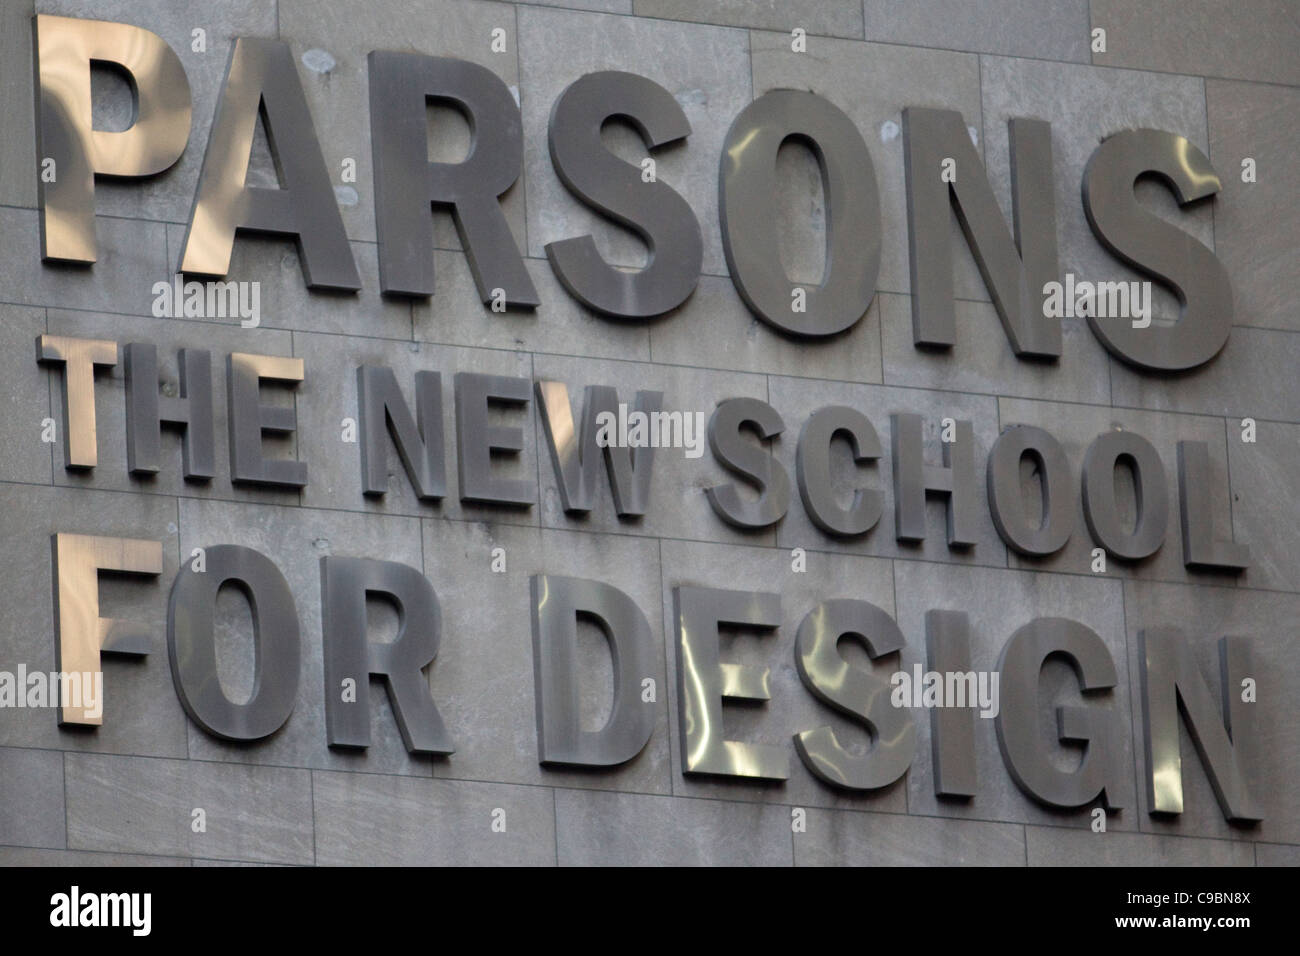 Parsons School Of Design In The Fashion District New York City Usa Stock Photo Alamy